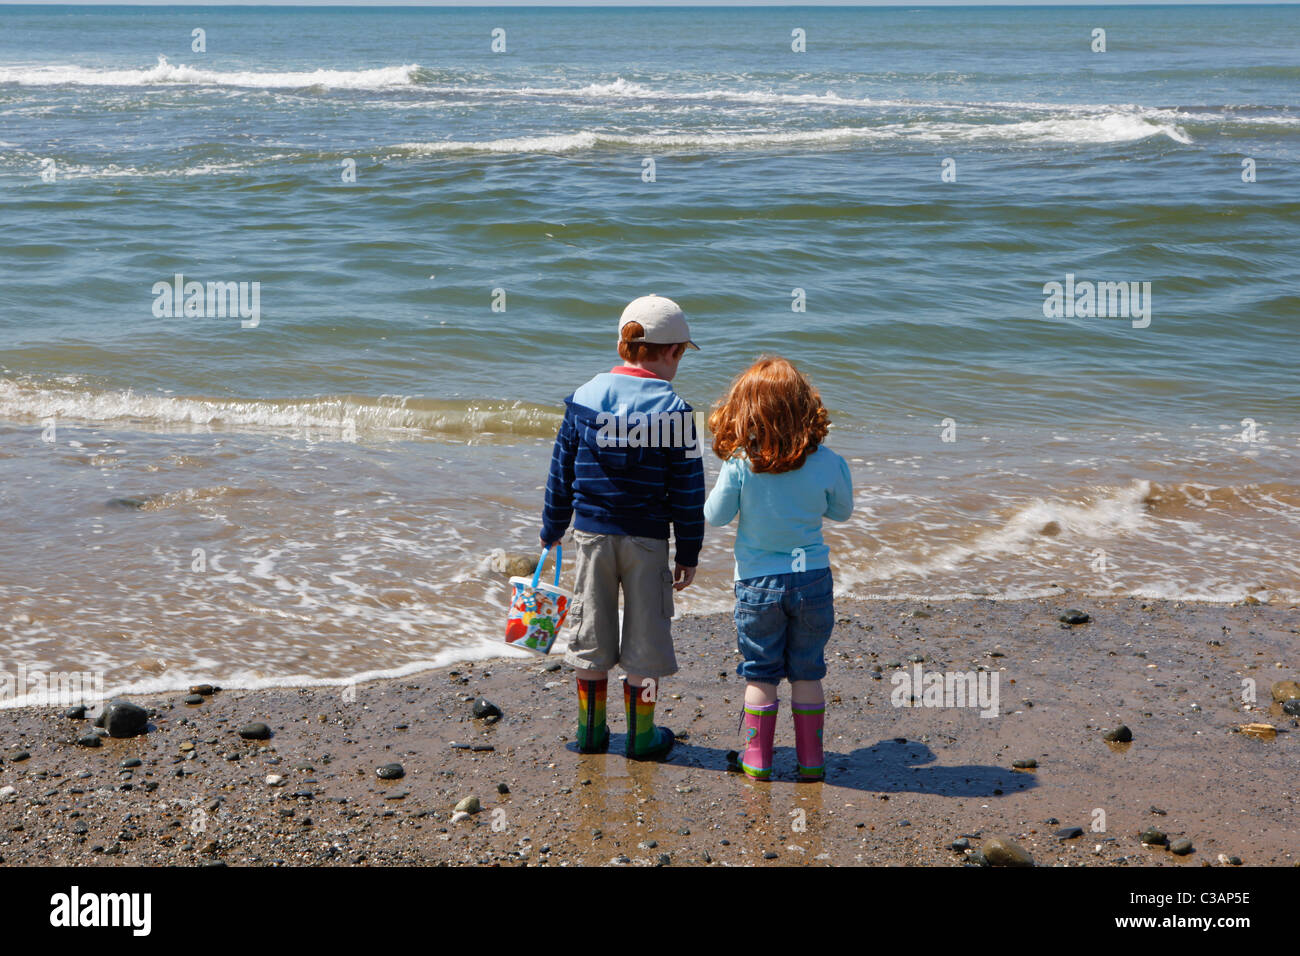 Two children, brother and sister on a beach with bucket and spade. - Stock Image